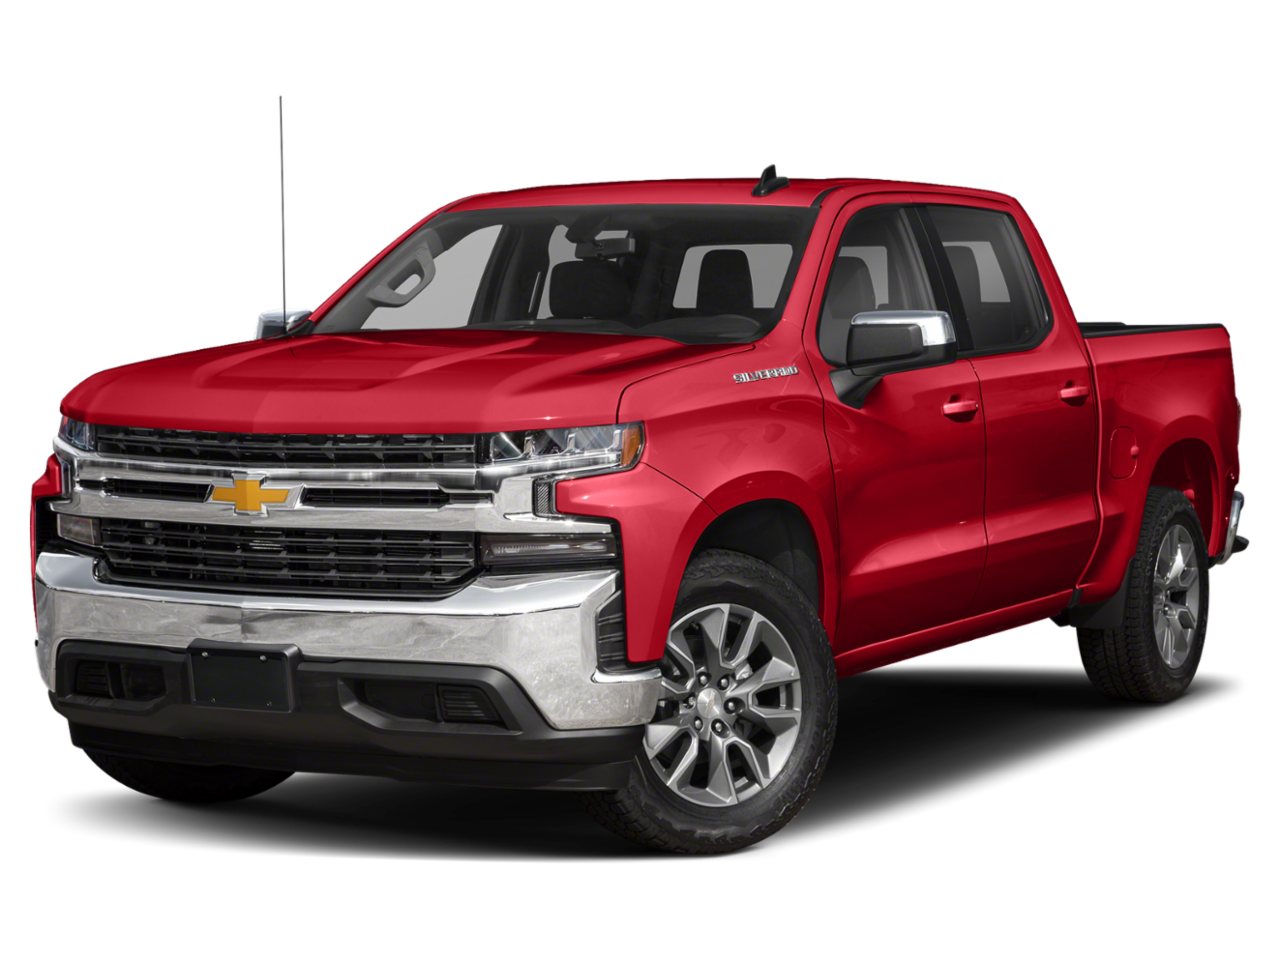 Mid State Chevrolet Buick In Sutton Wv Summersville Flatwoods And Weston Buick And Chevrolet Dealer Alternative